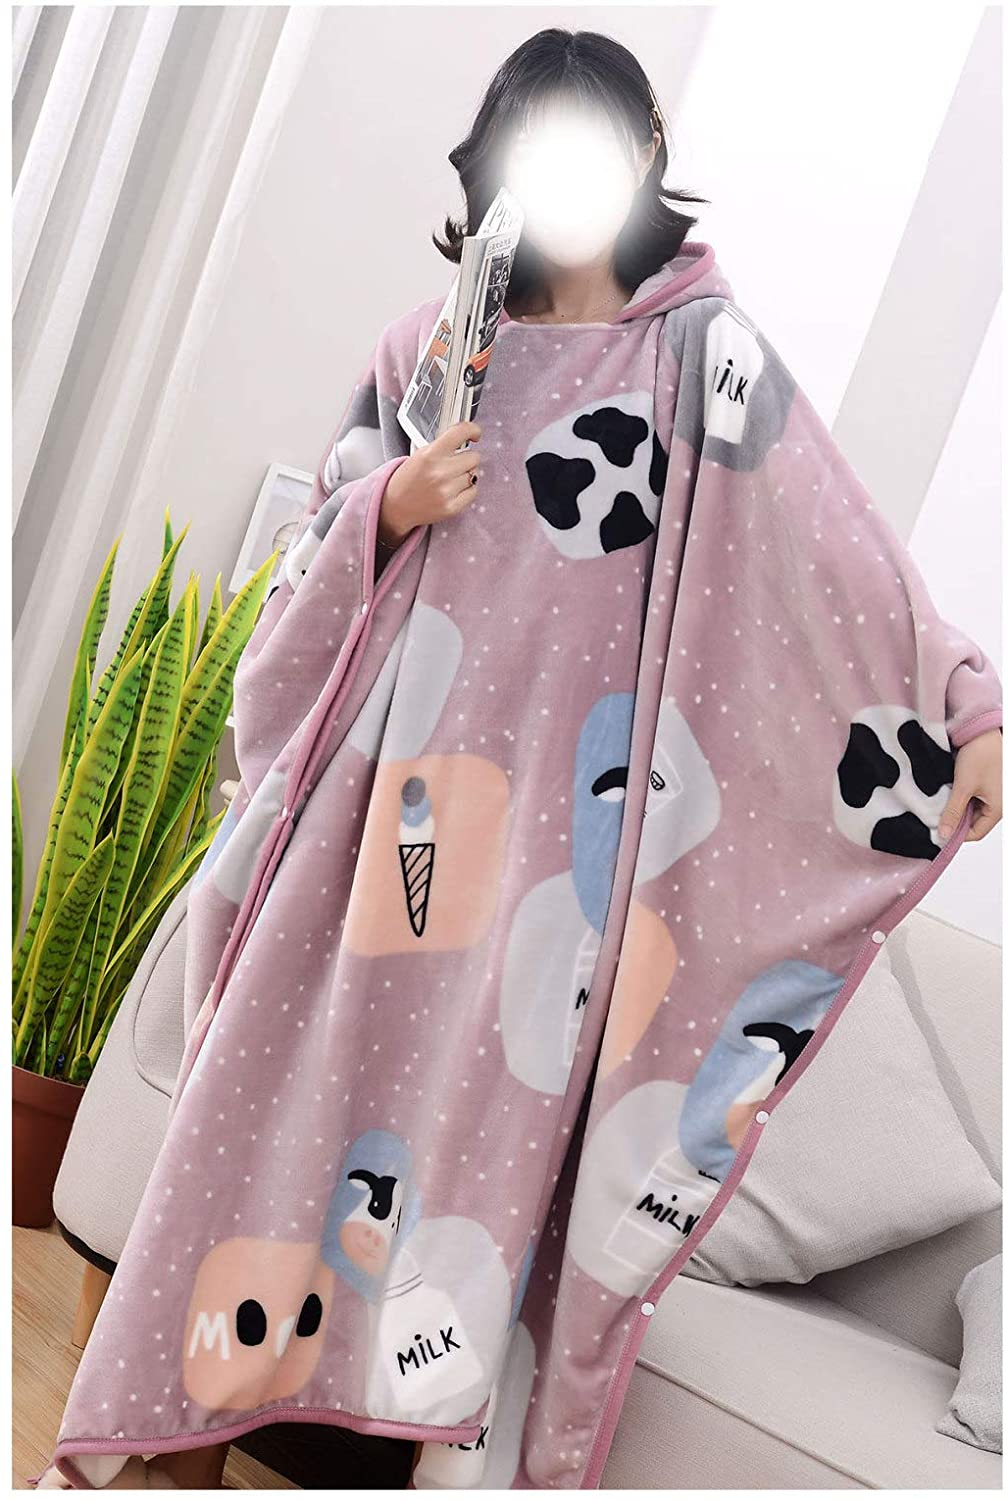 SUTECO Wearable Fleece Blanket Flannel Fleece Cloak Blanket Hoodie, Super Soft, Lightweight, Cozy and Fashion Hooded Blanket for Women One Size Fits All Wrap Robe